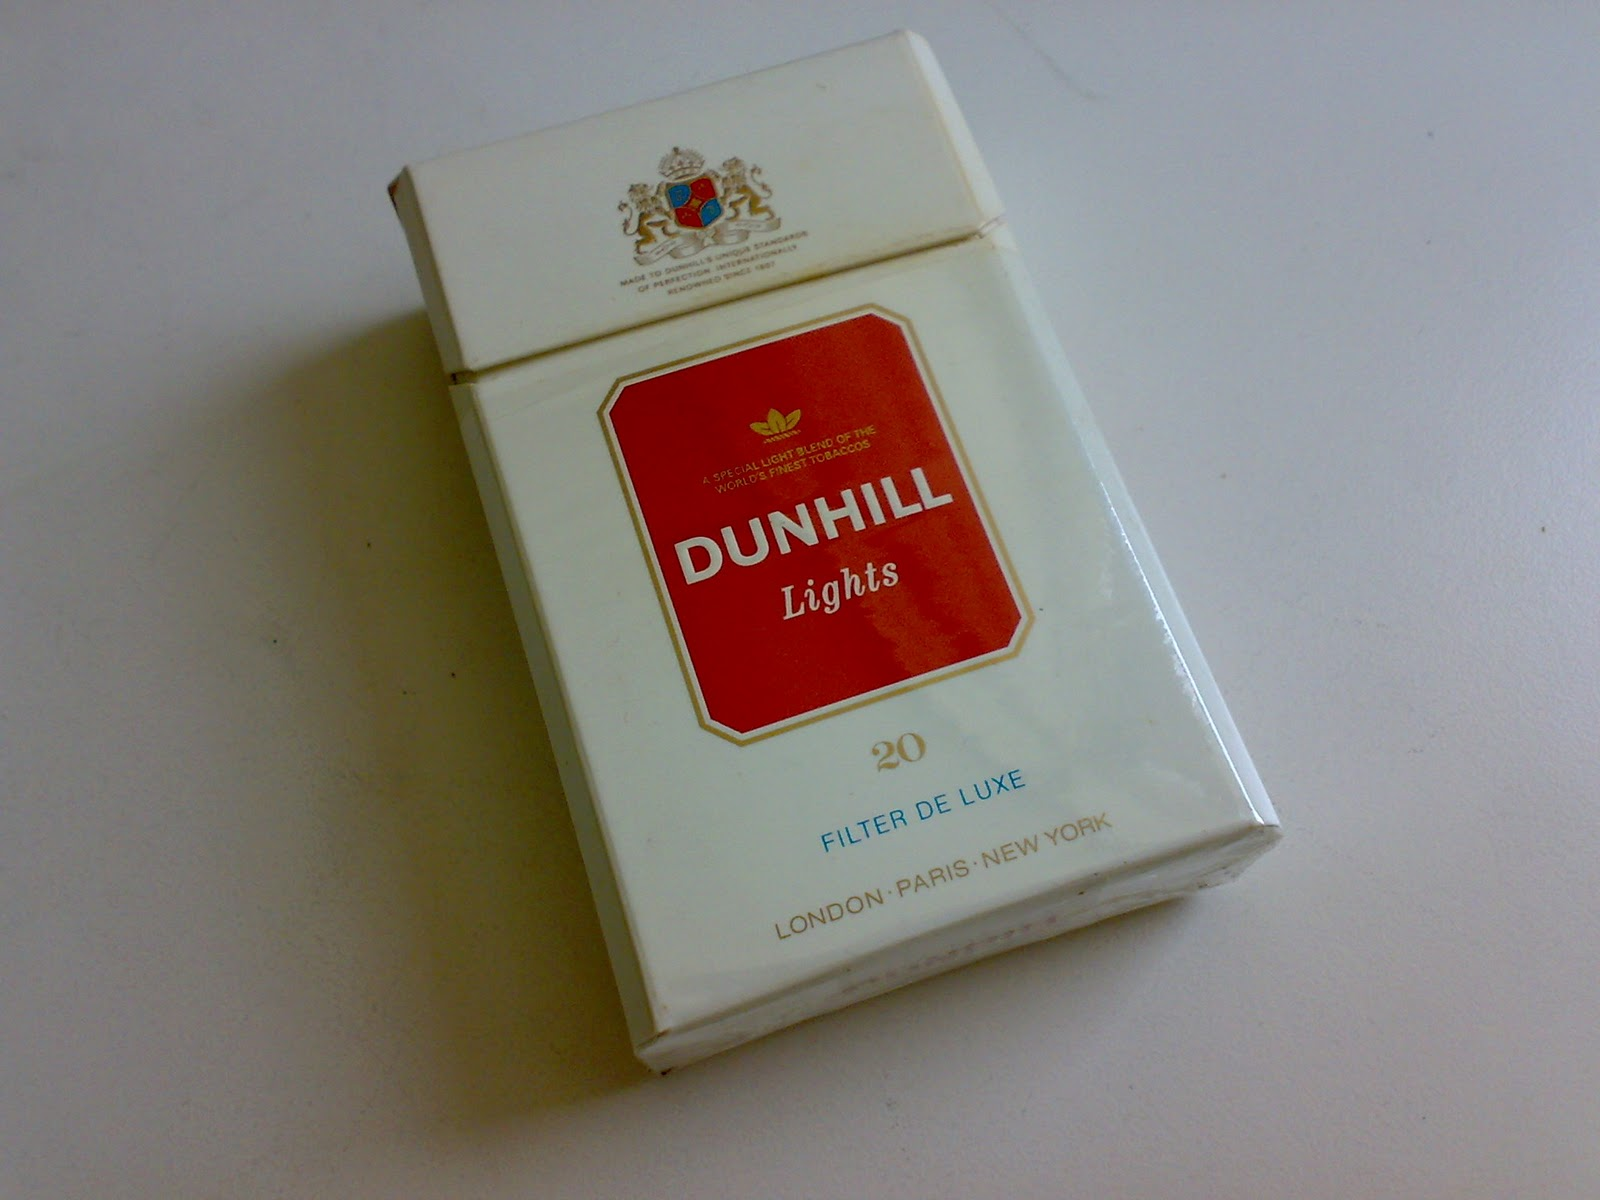 Where can you buy cheap cigarettes Lucky Strike in New York